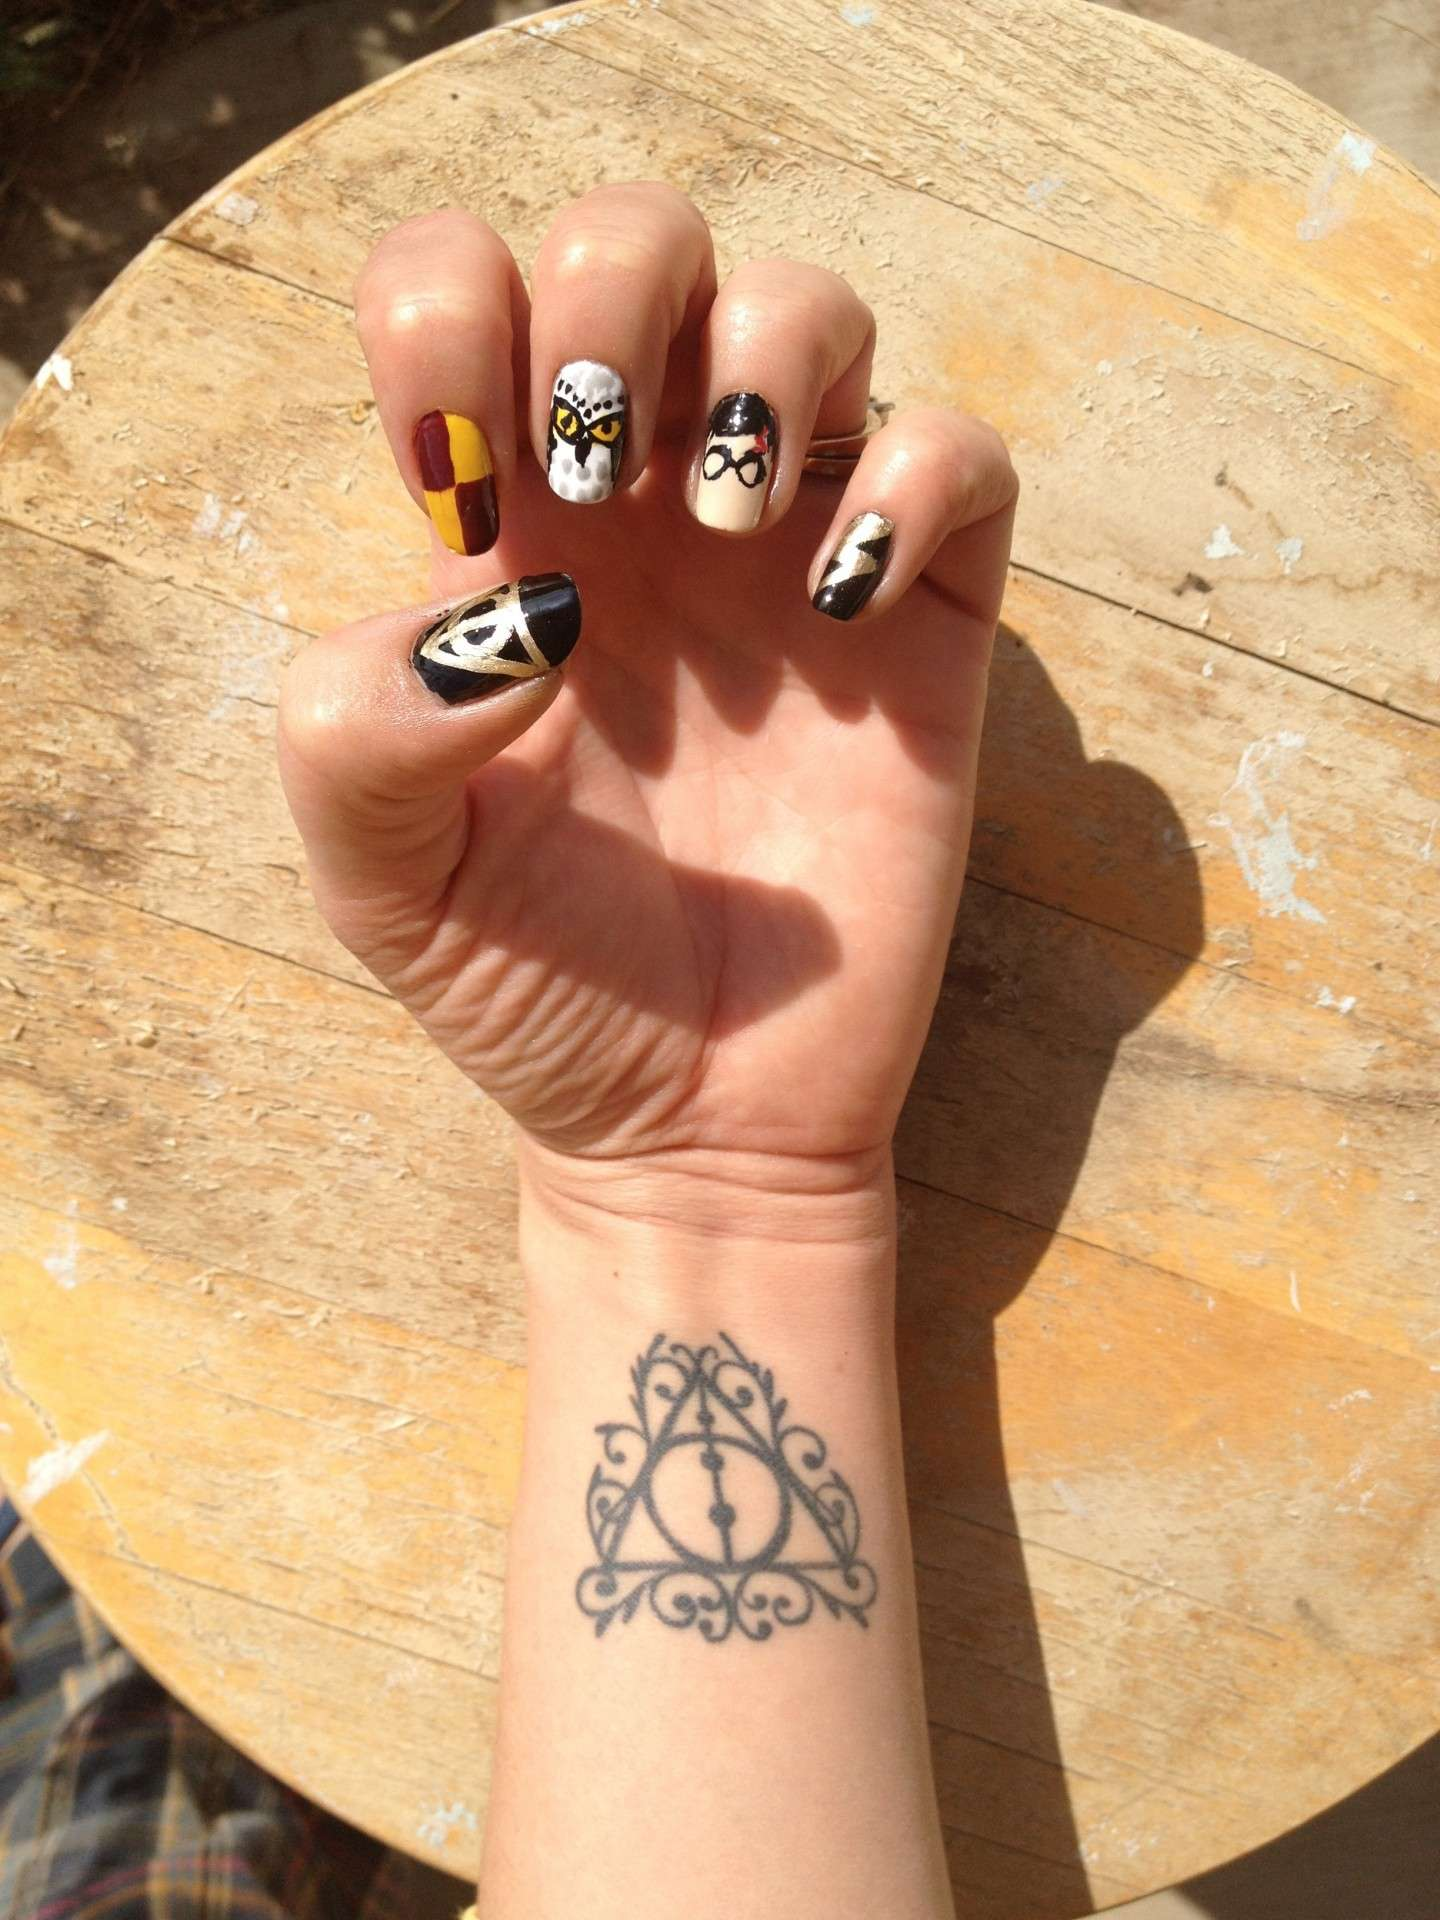 Harry nail art